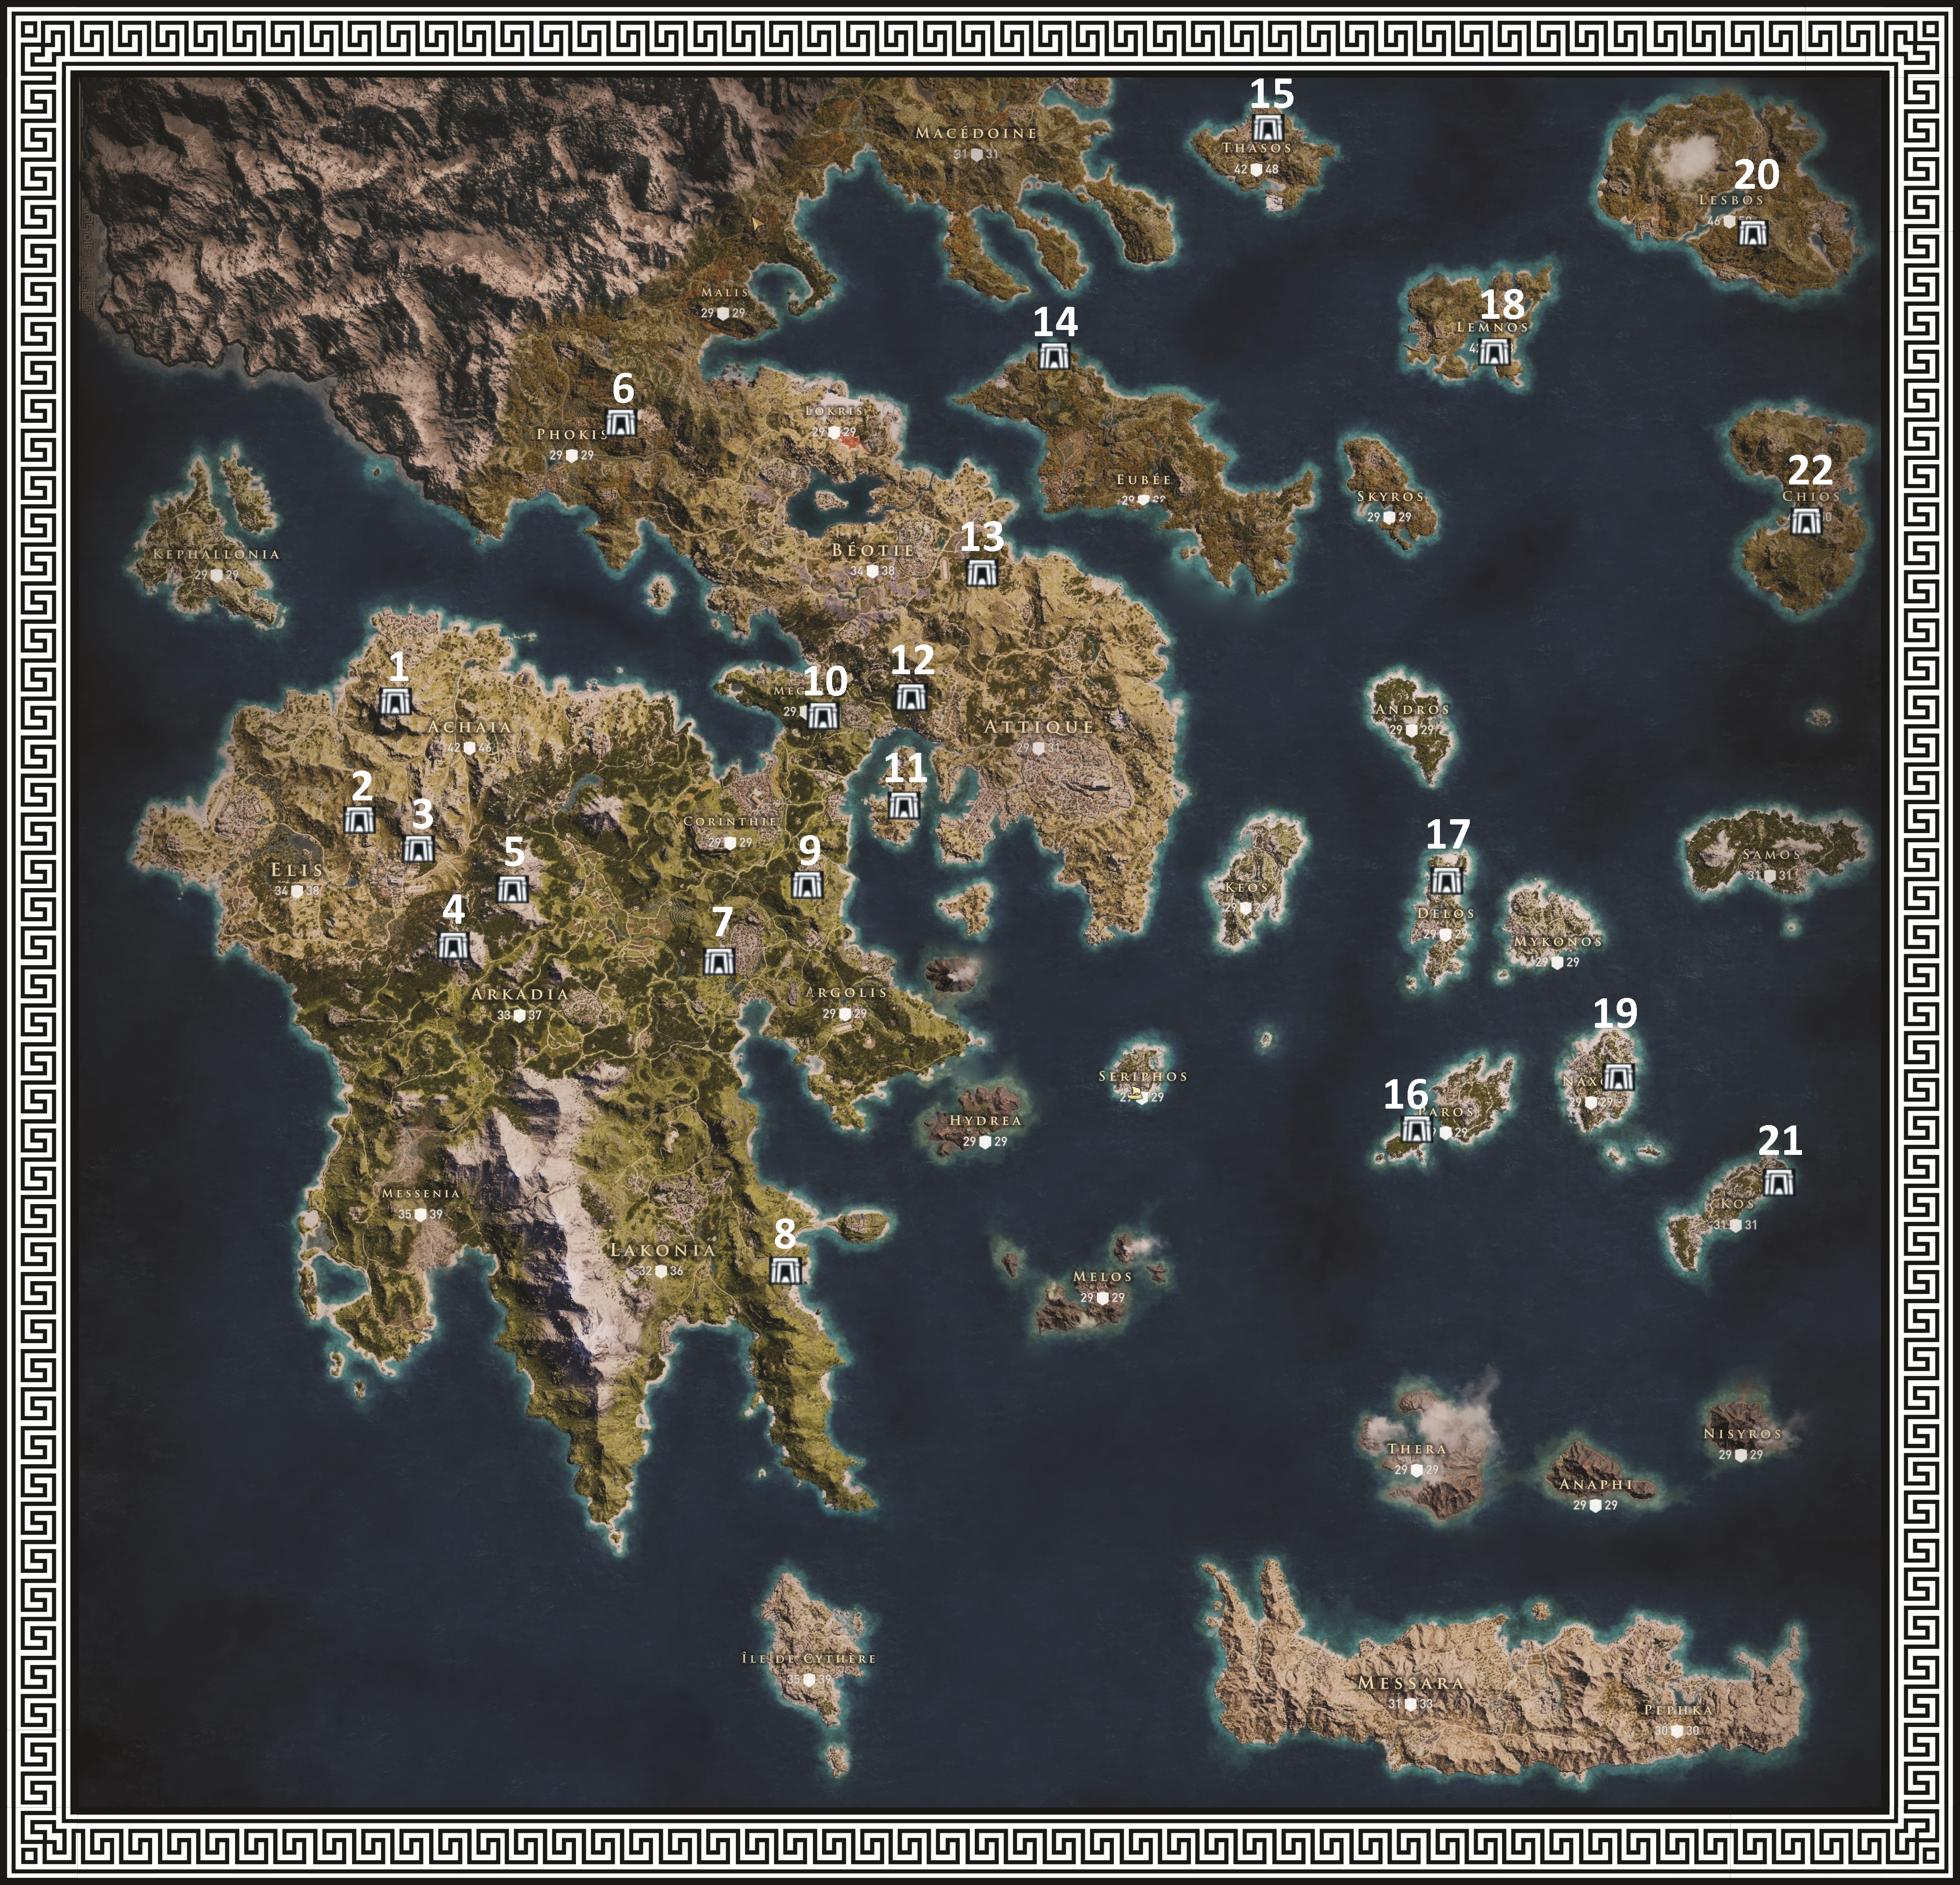 carte assassin creed odyssey Soluce] Assassin's Creed Odyssey : Carte et emplacements des